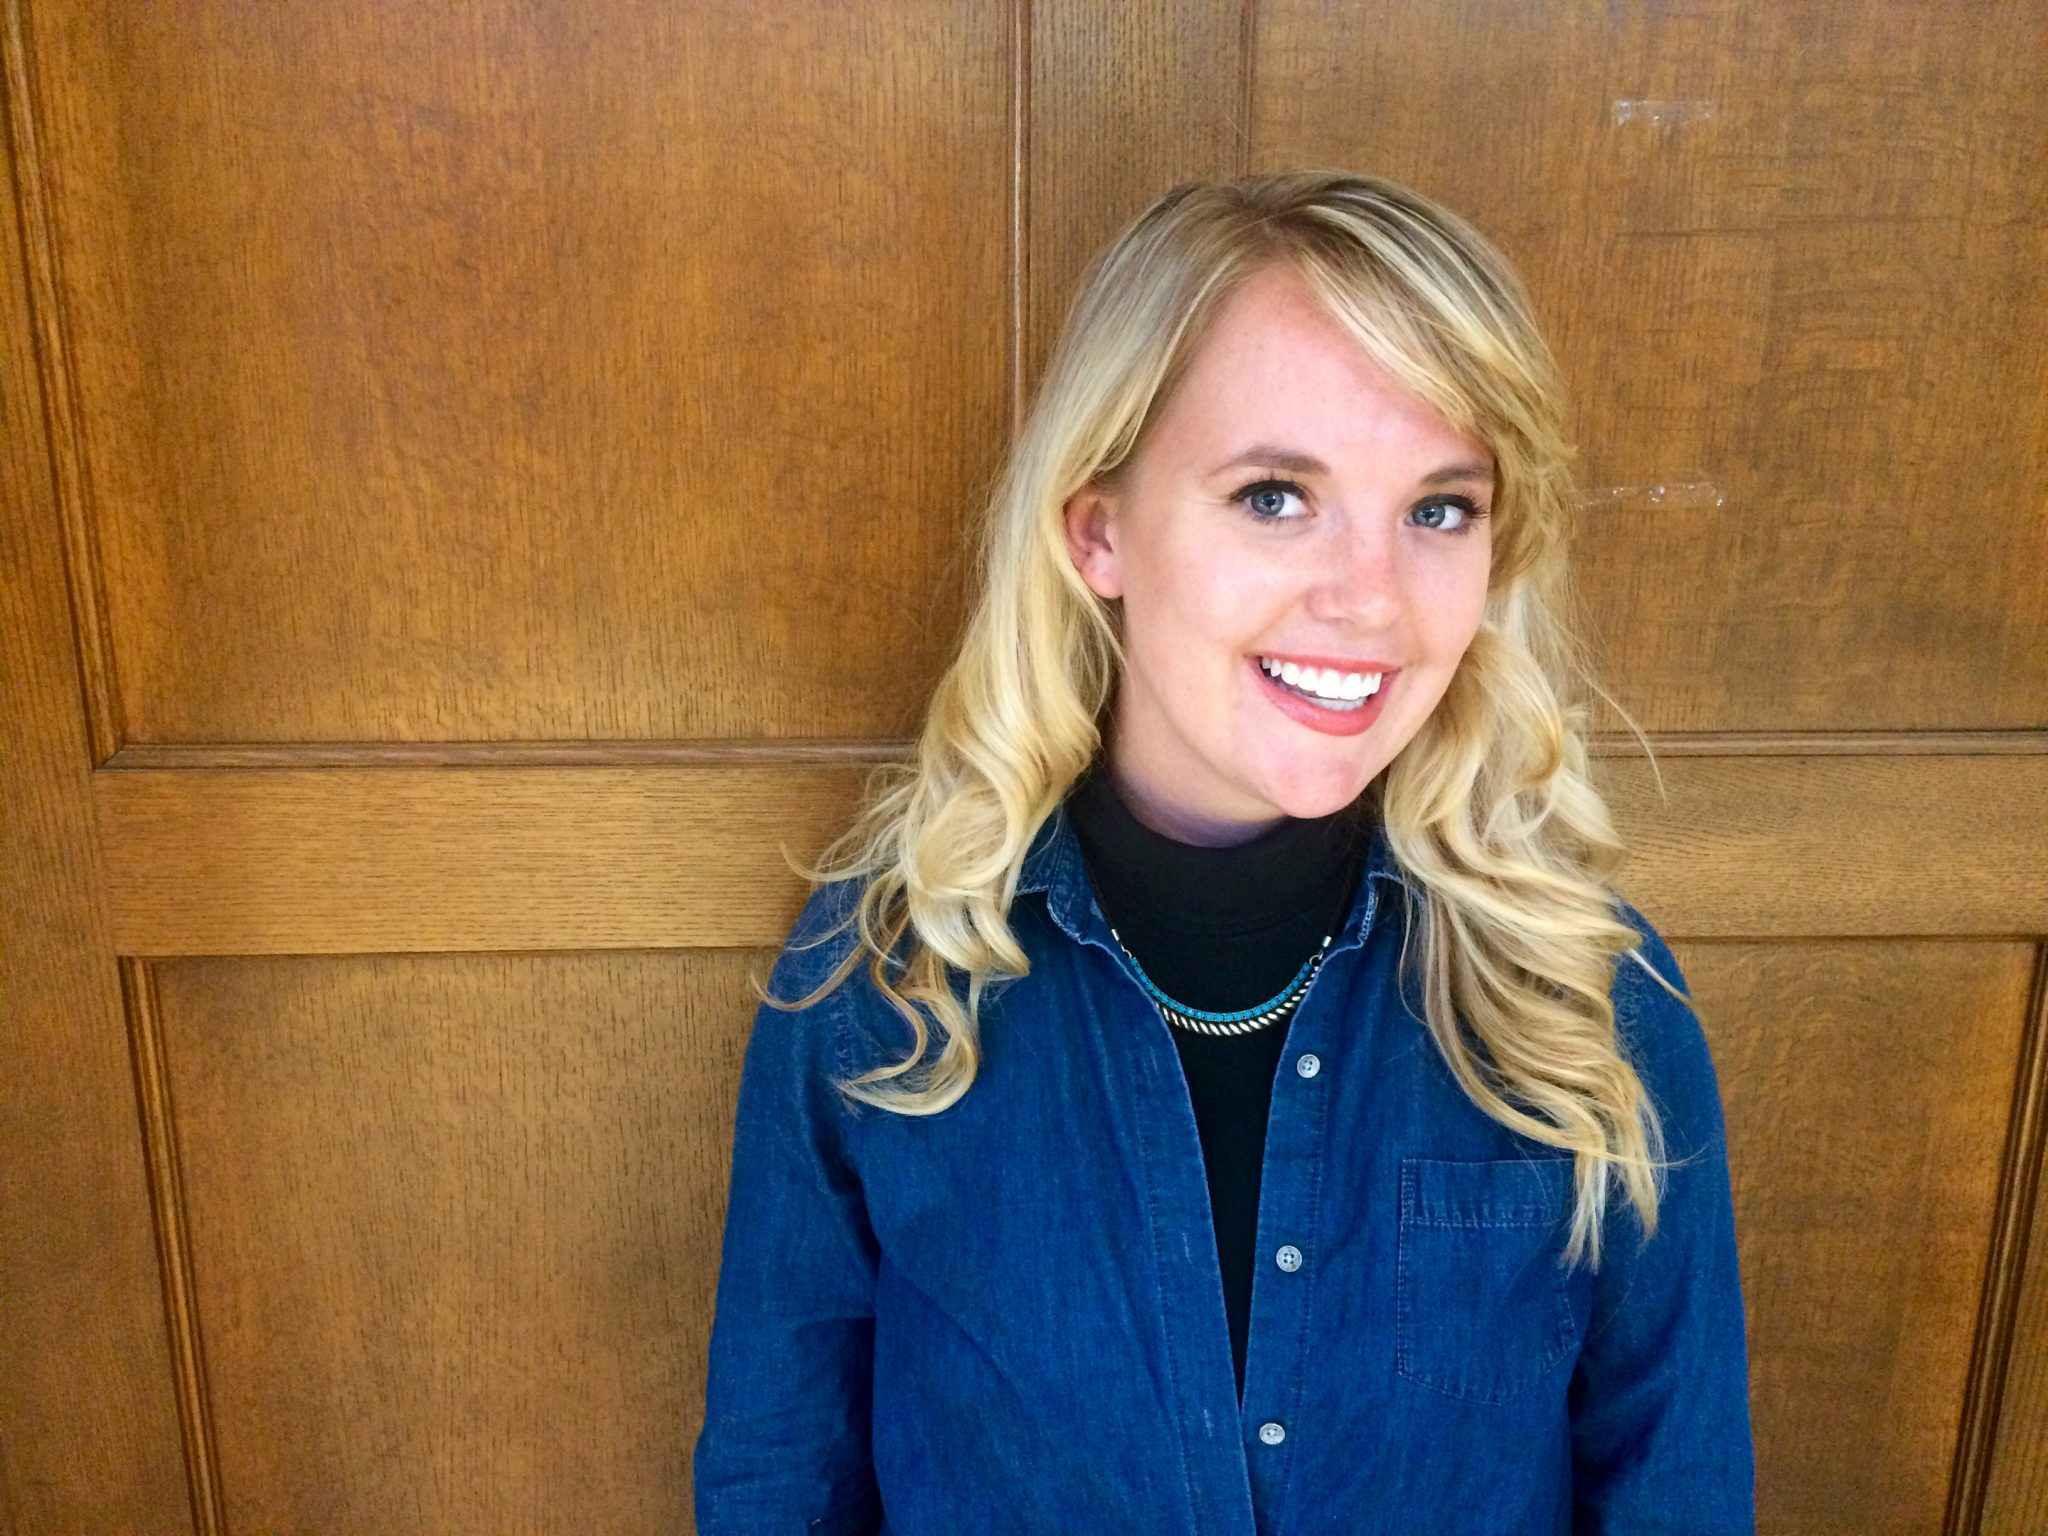 Clare Kocman is smiling in front of wooden panels. She is wearing a black turtlenecks with a blue top, and a teal and gold necklace.